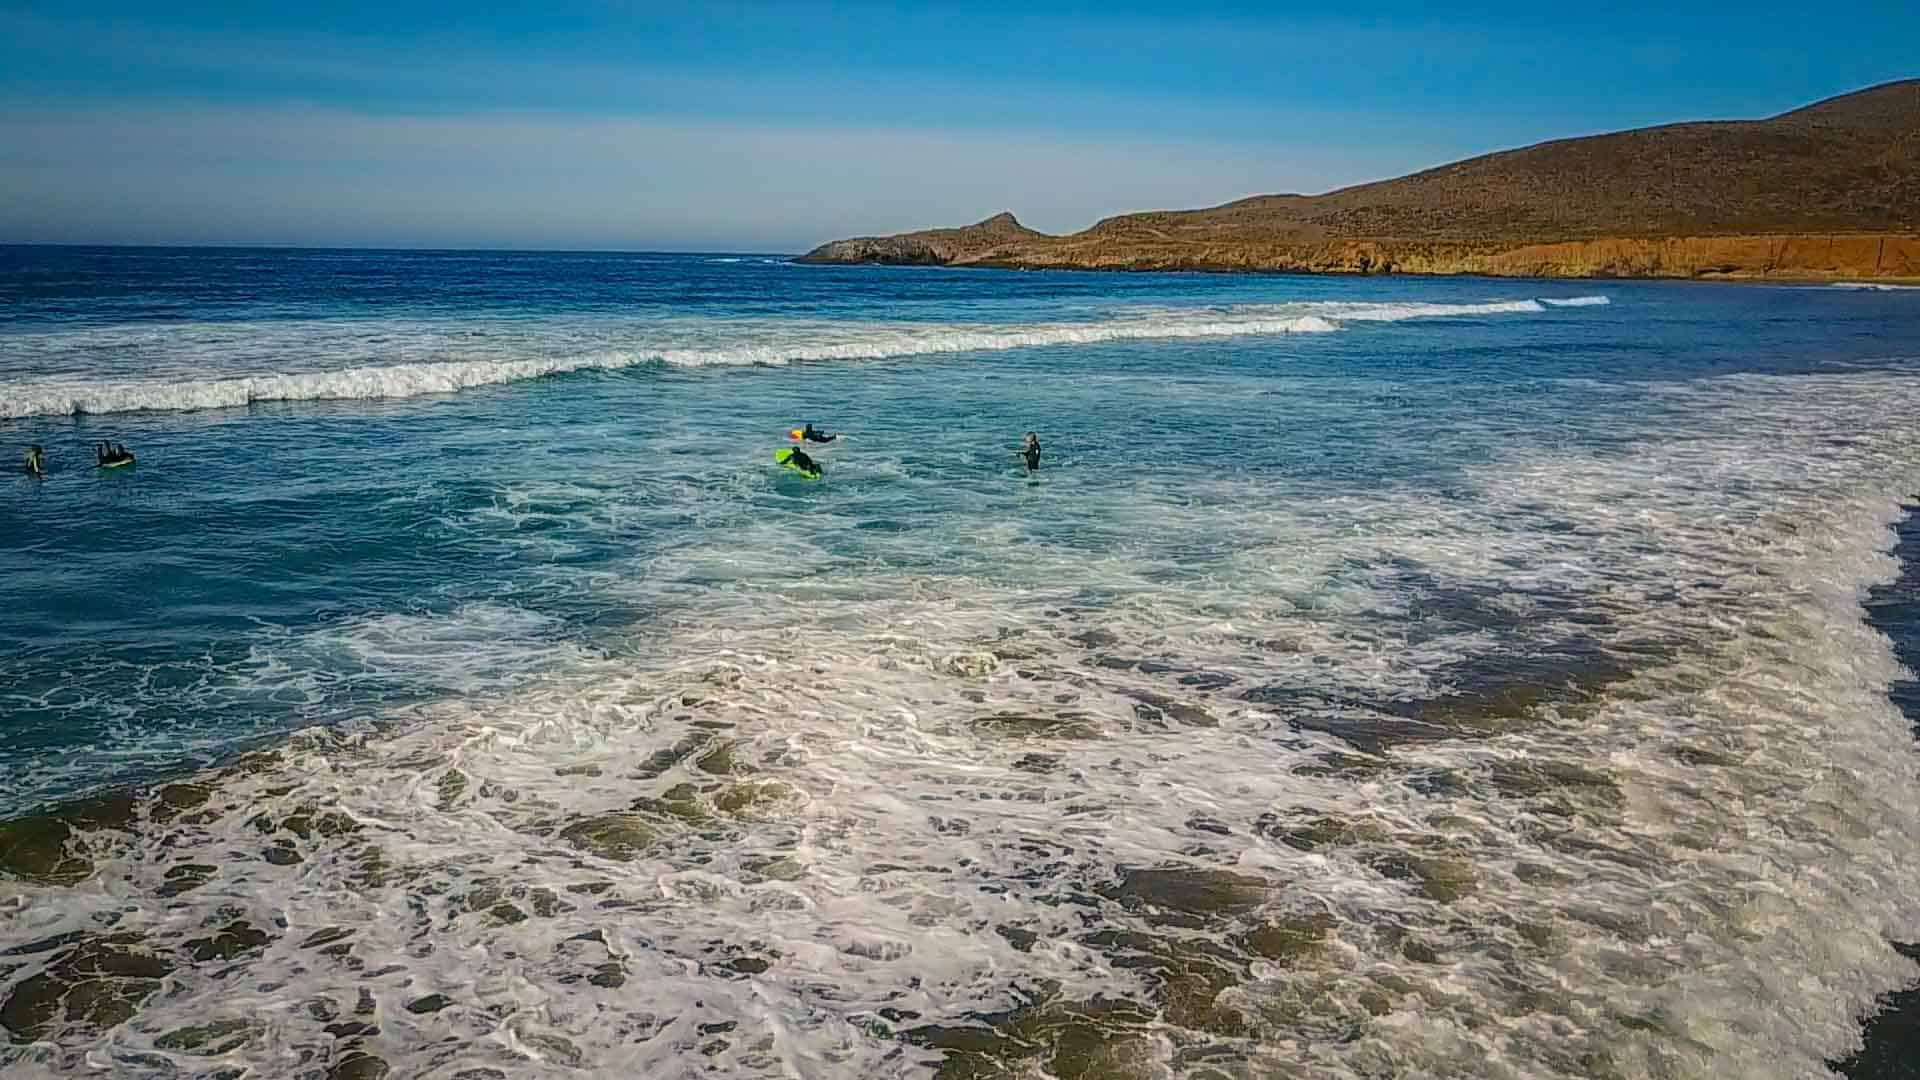 Adventure-in-a-backpack-baja-california-surf-tour-44